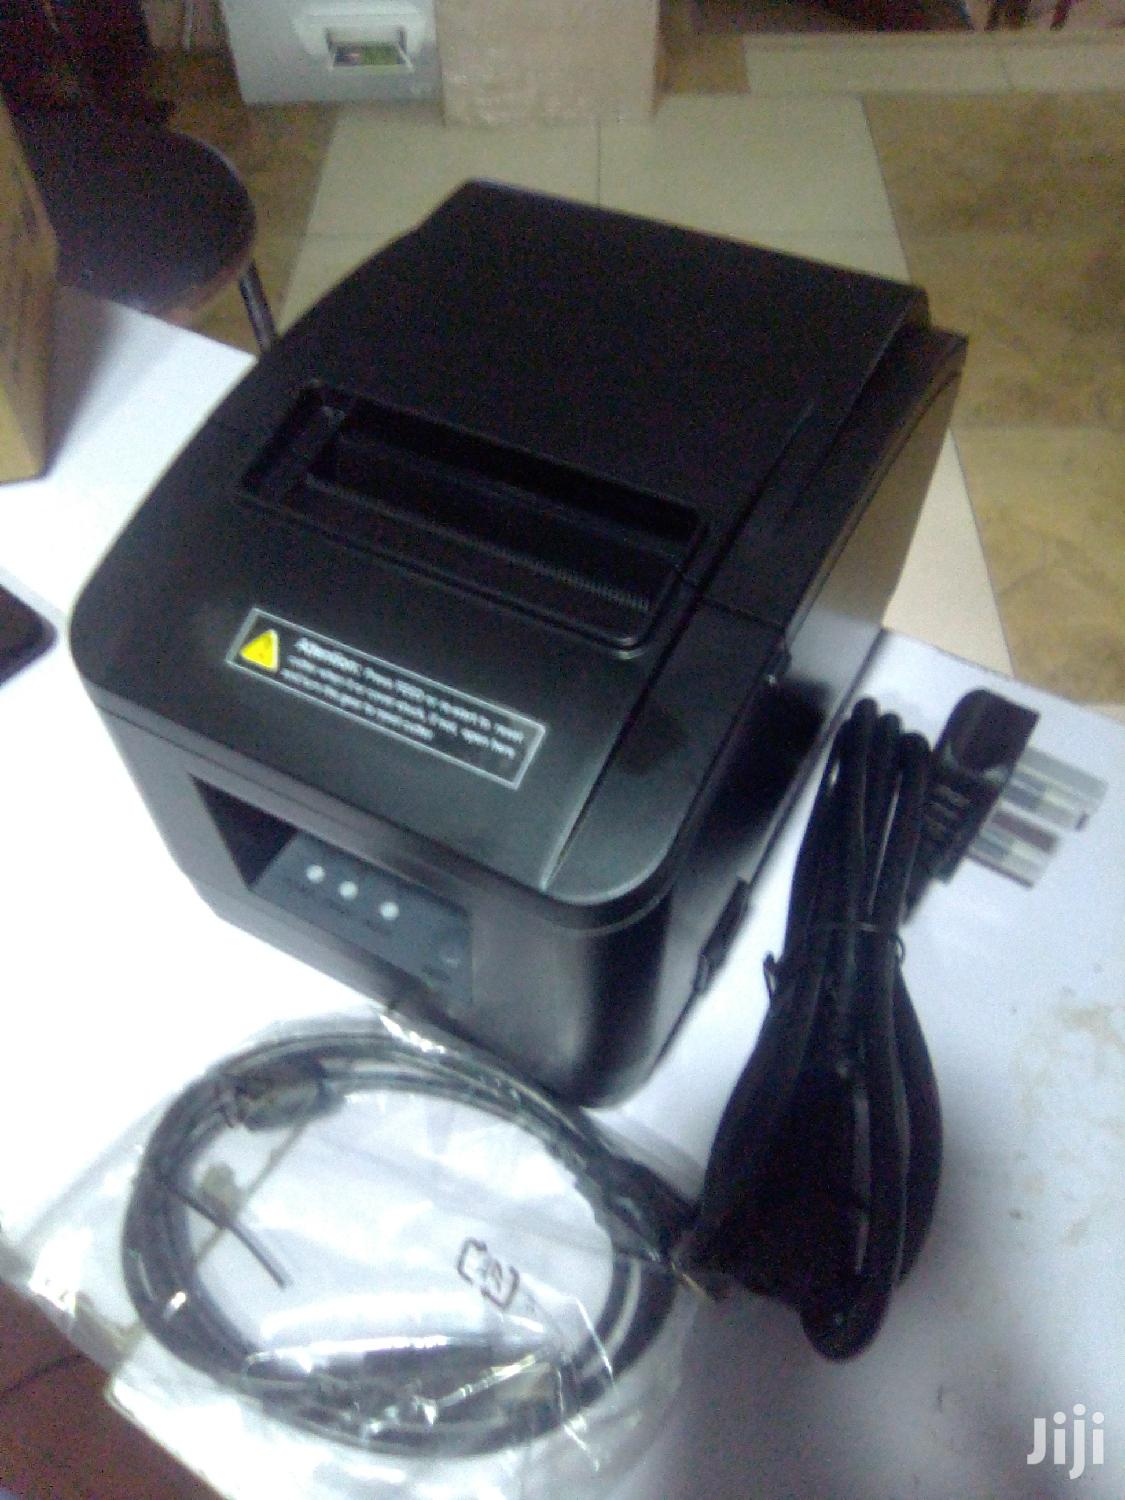 Archive: 80mm Thermal Receipt Printer With Usb Port